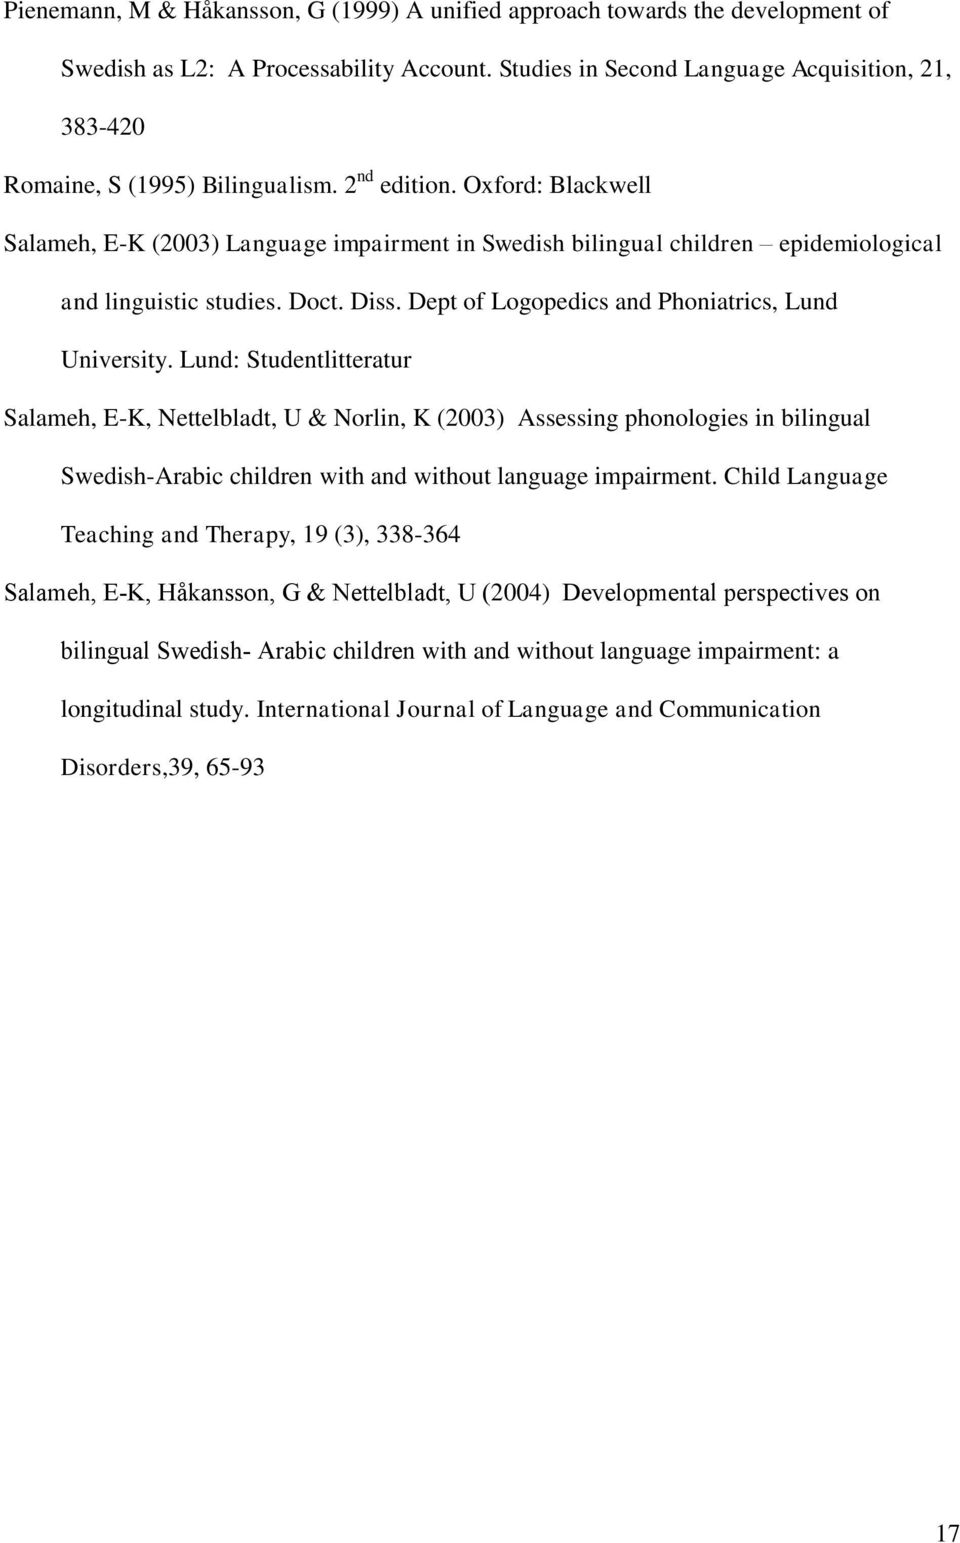 Oxford: Blackwell Salameh, E-K (2003) Language impairment in Swedish bilingual children epidemiological and linguistic studies. Doct. Diss. Dept of Logopedics and Phoniatrics, Lund University.